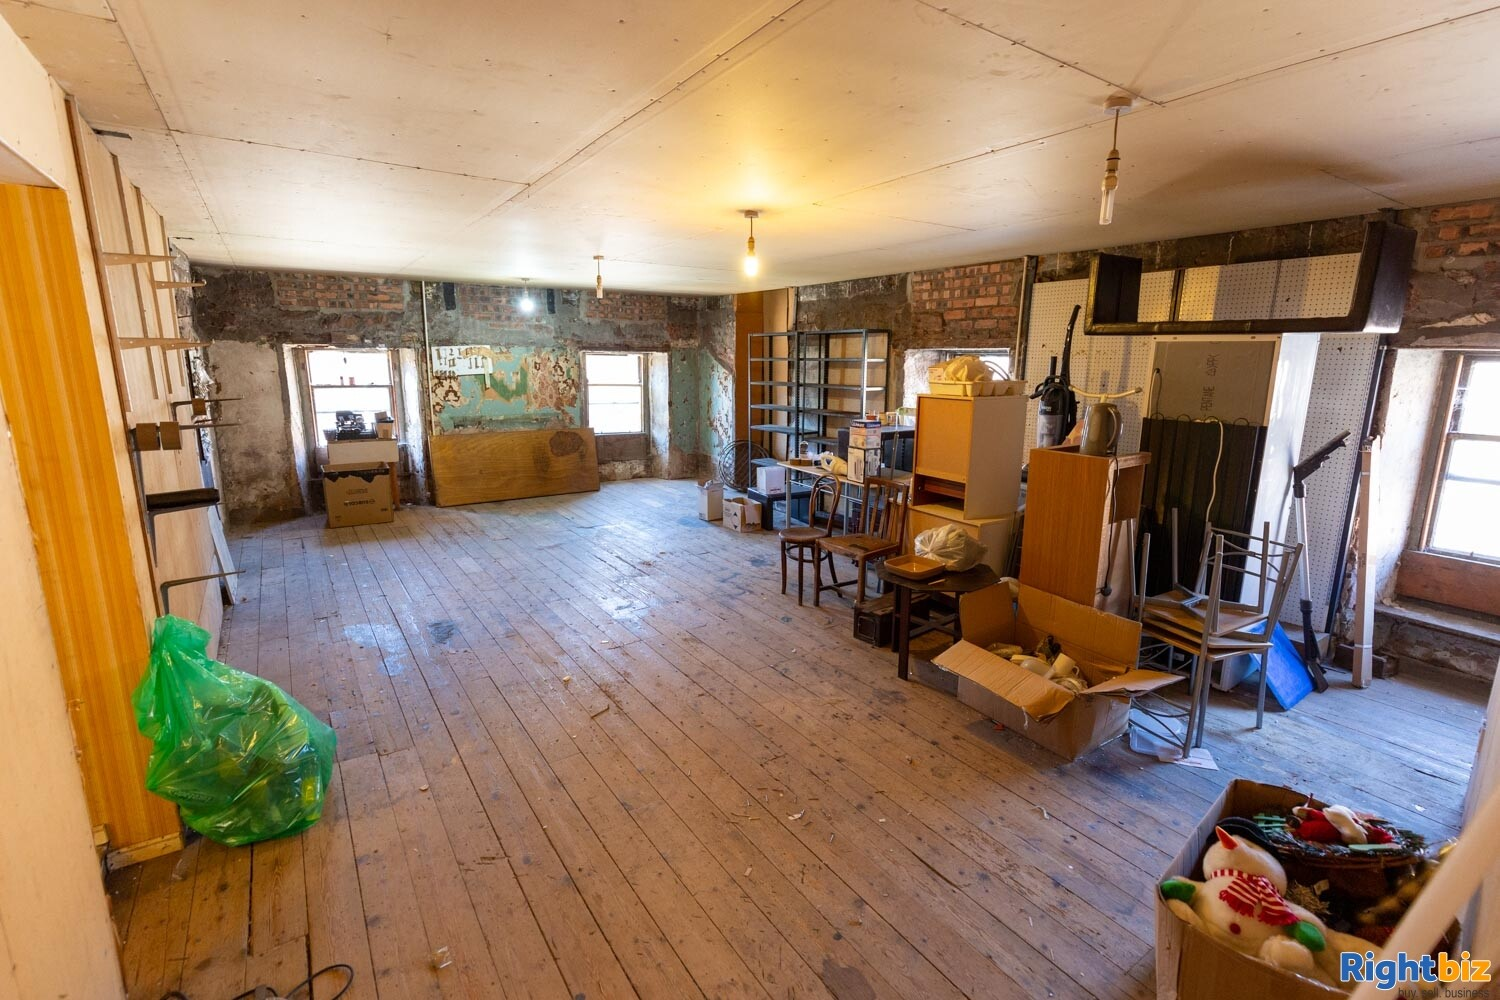 Freehold Hospitality & Residential Development Opportunity, Kirriemuir, Angus - Image 5